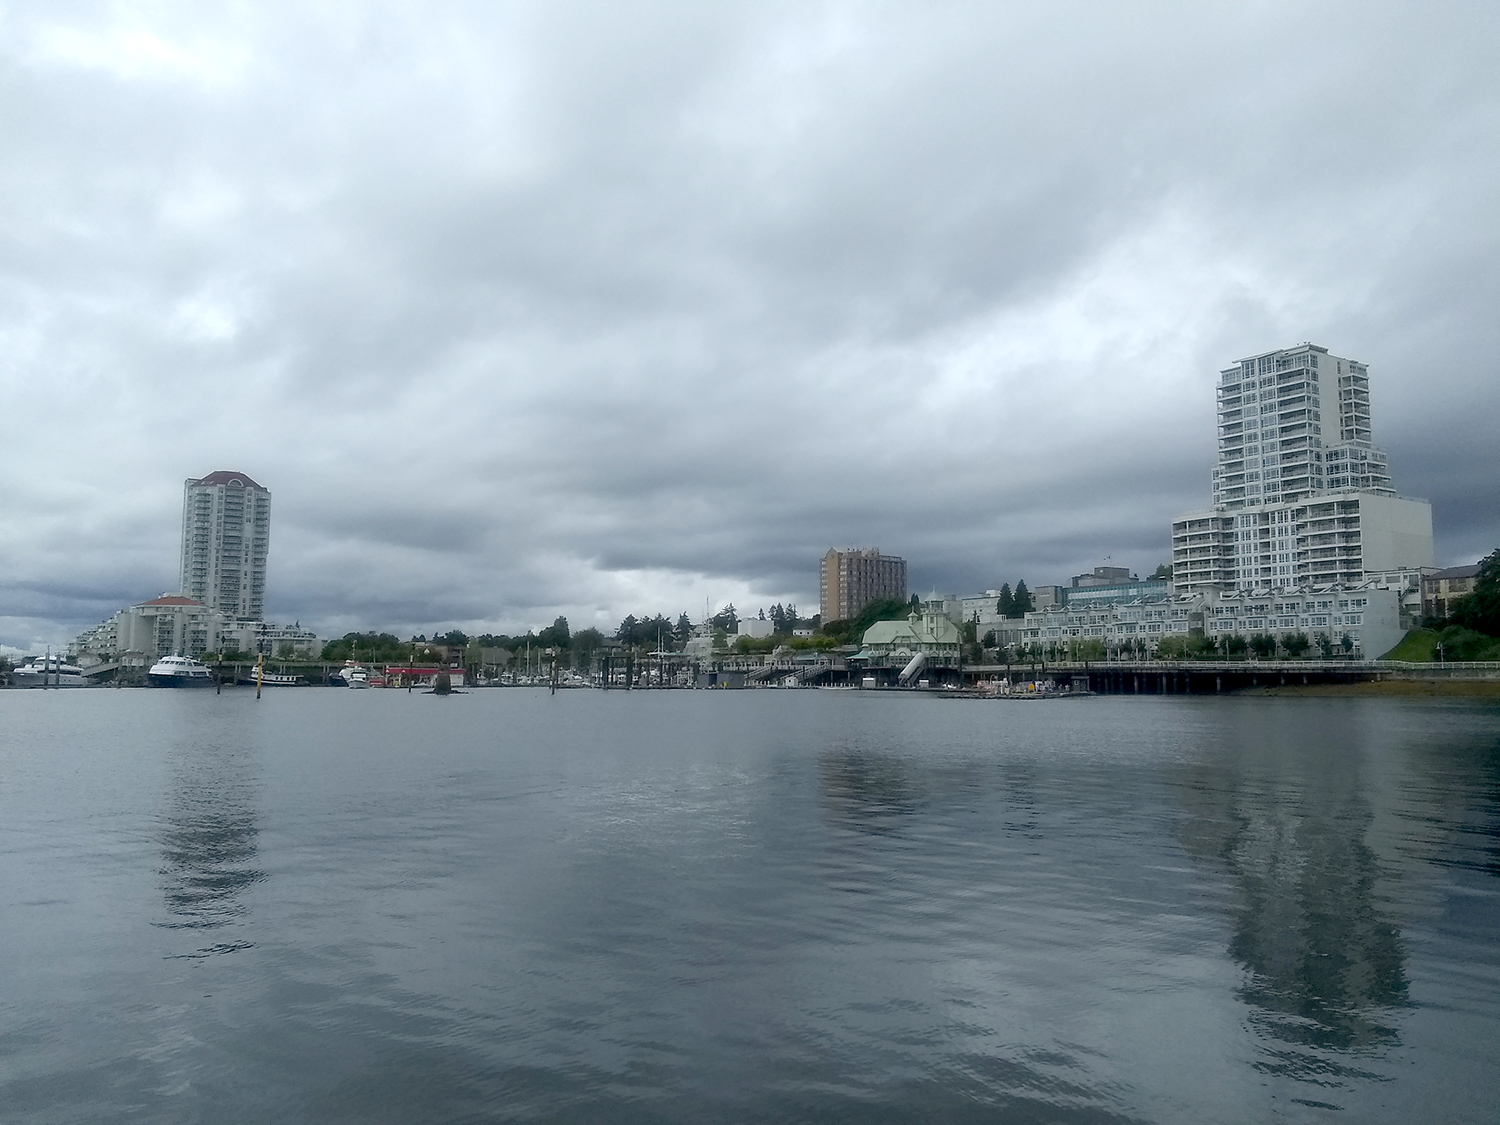 ocean view with high rise buildings in vancouver